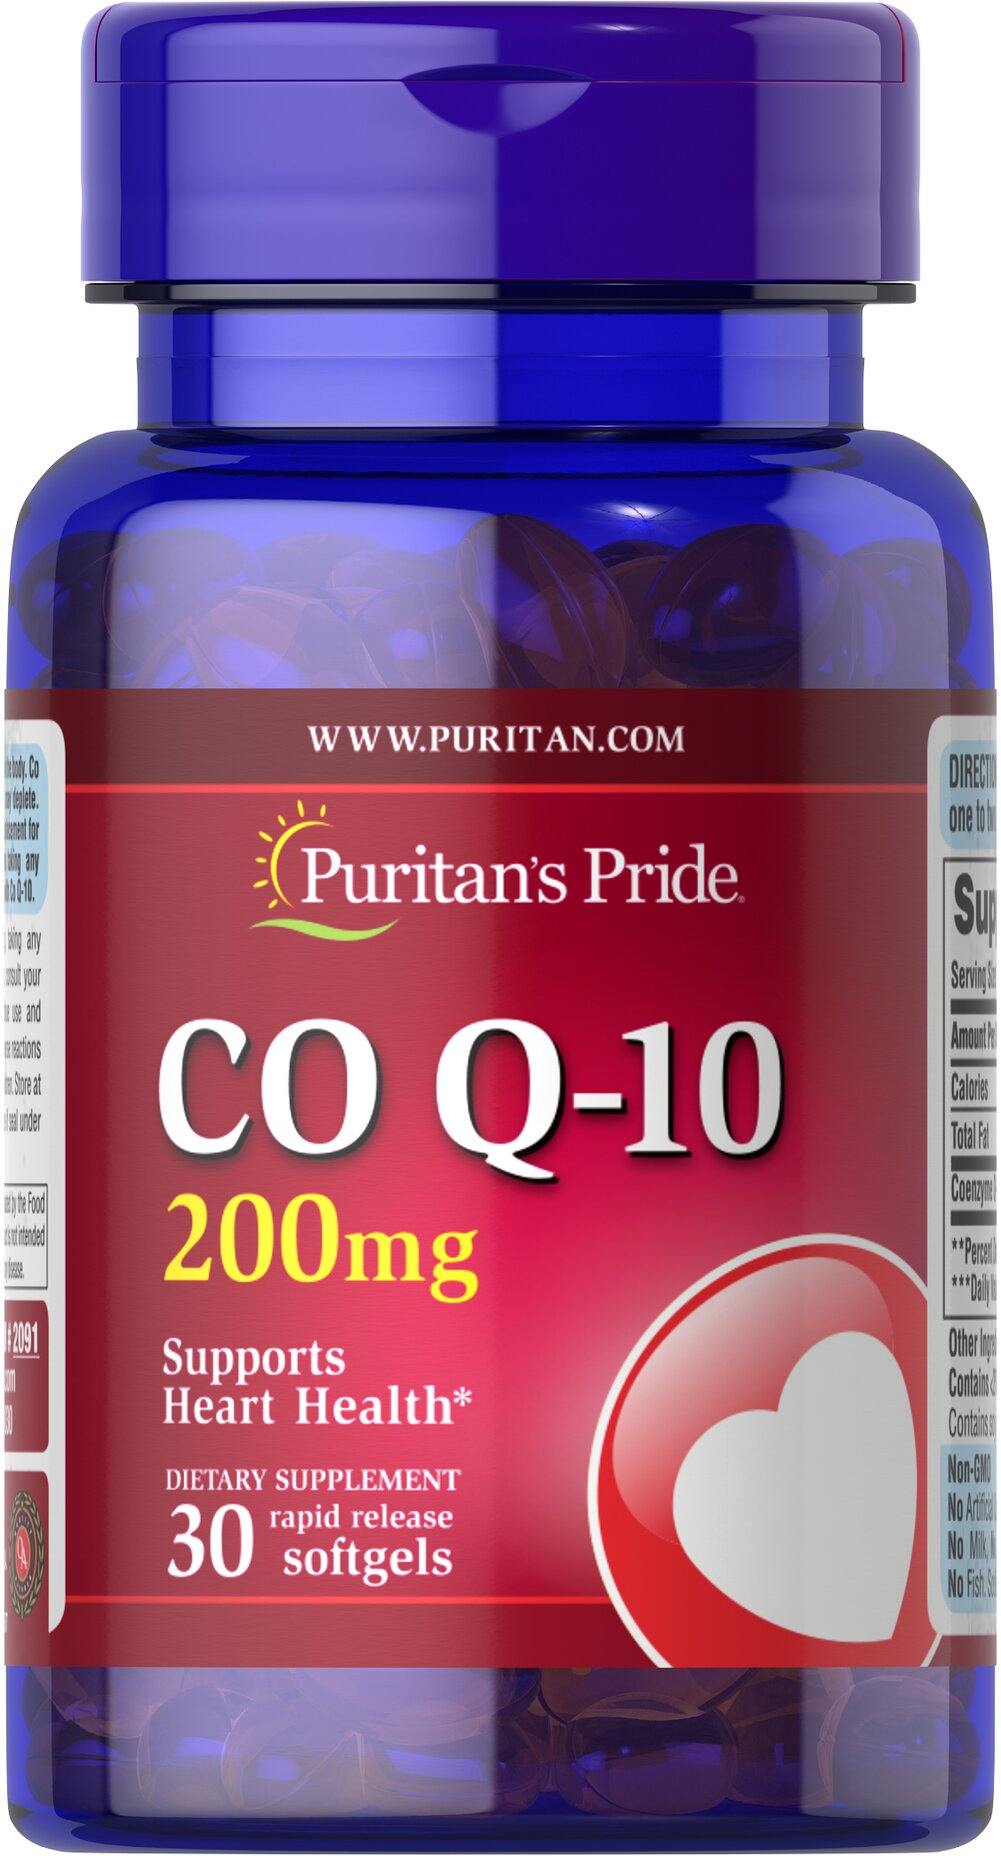 Q-SORB™ Co Q-10 200 mg  30 Rapid Release Softgels 200 mg $14.99